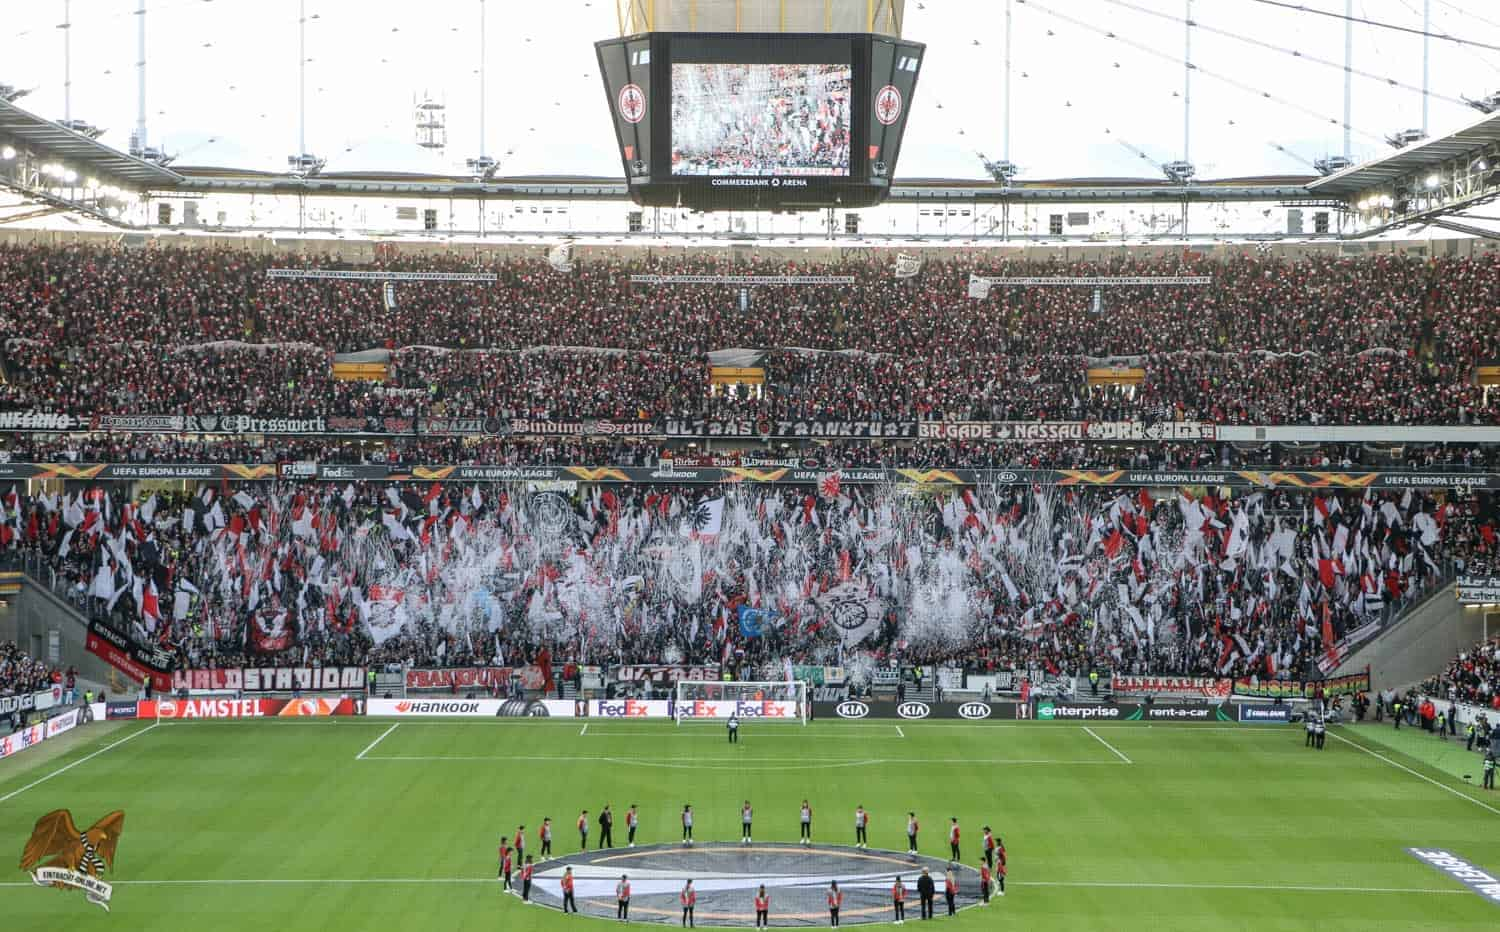 19-20-europaleague-eintracht-frankfurt-arsenal-london-07